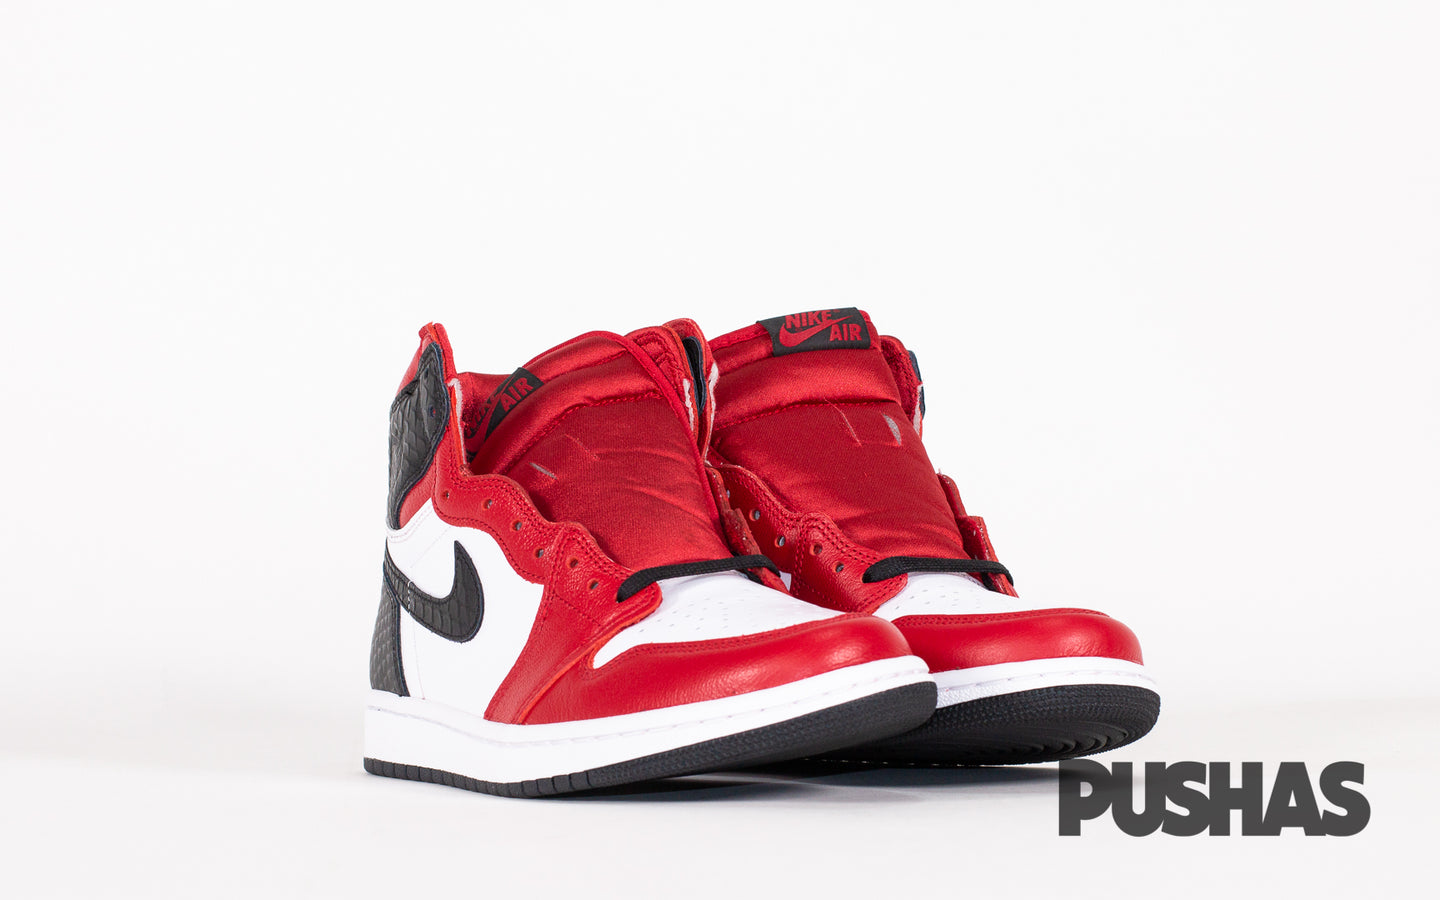 pushas-nike-air-jordan-1-satin-snake-chicago